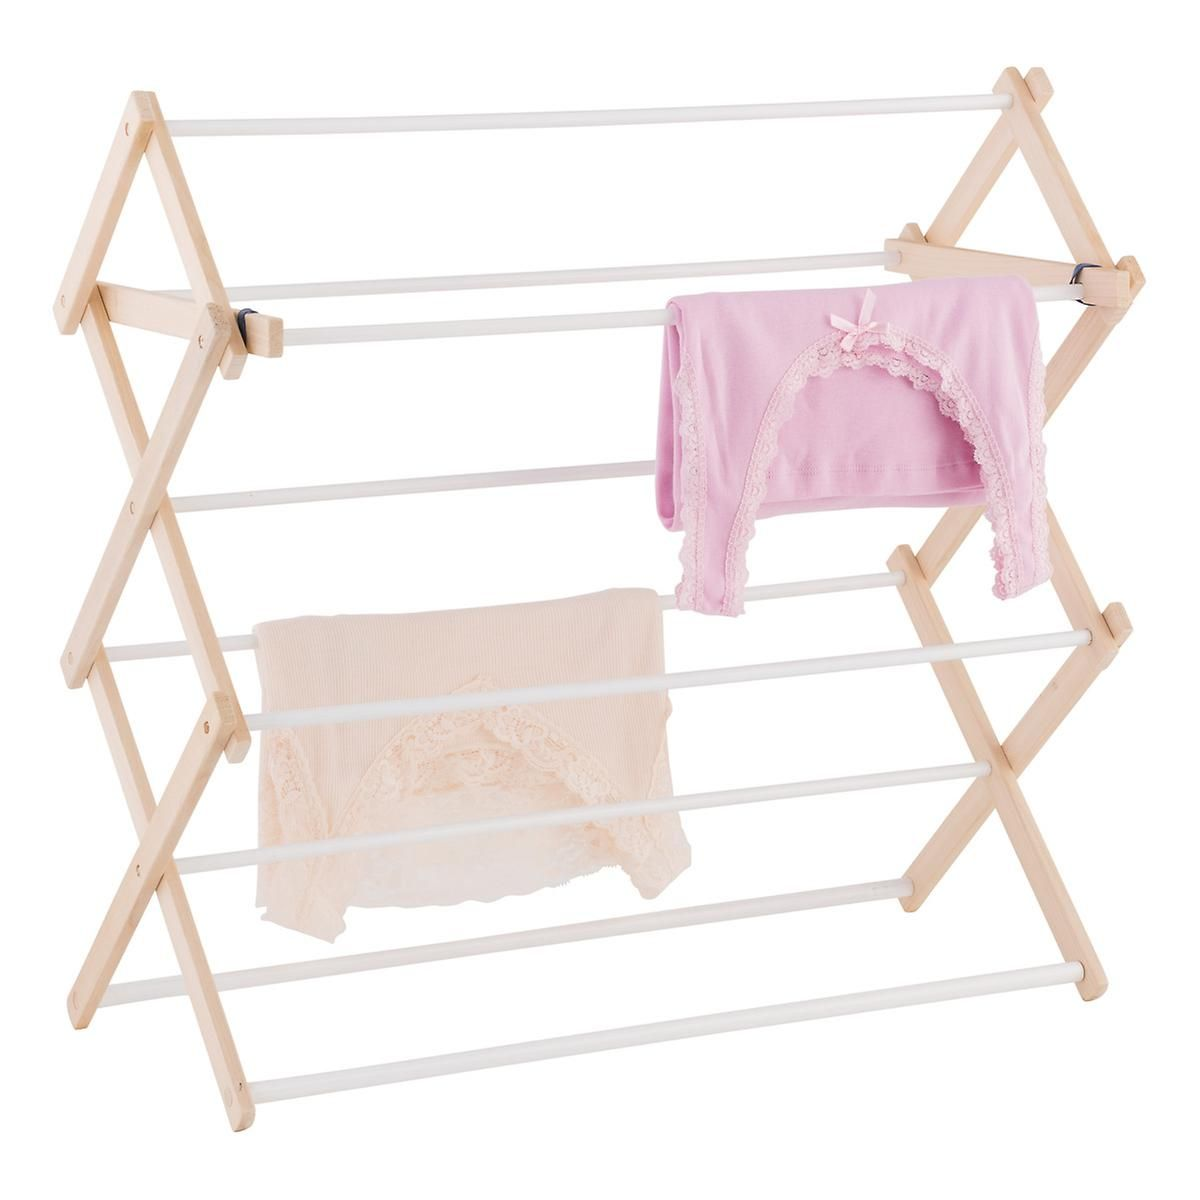 Dowel wooden wallmounted u floor clothes drying rack home